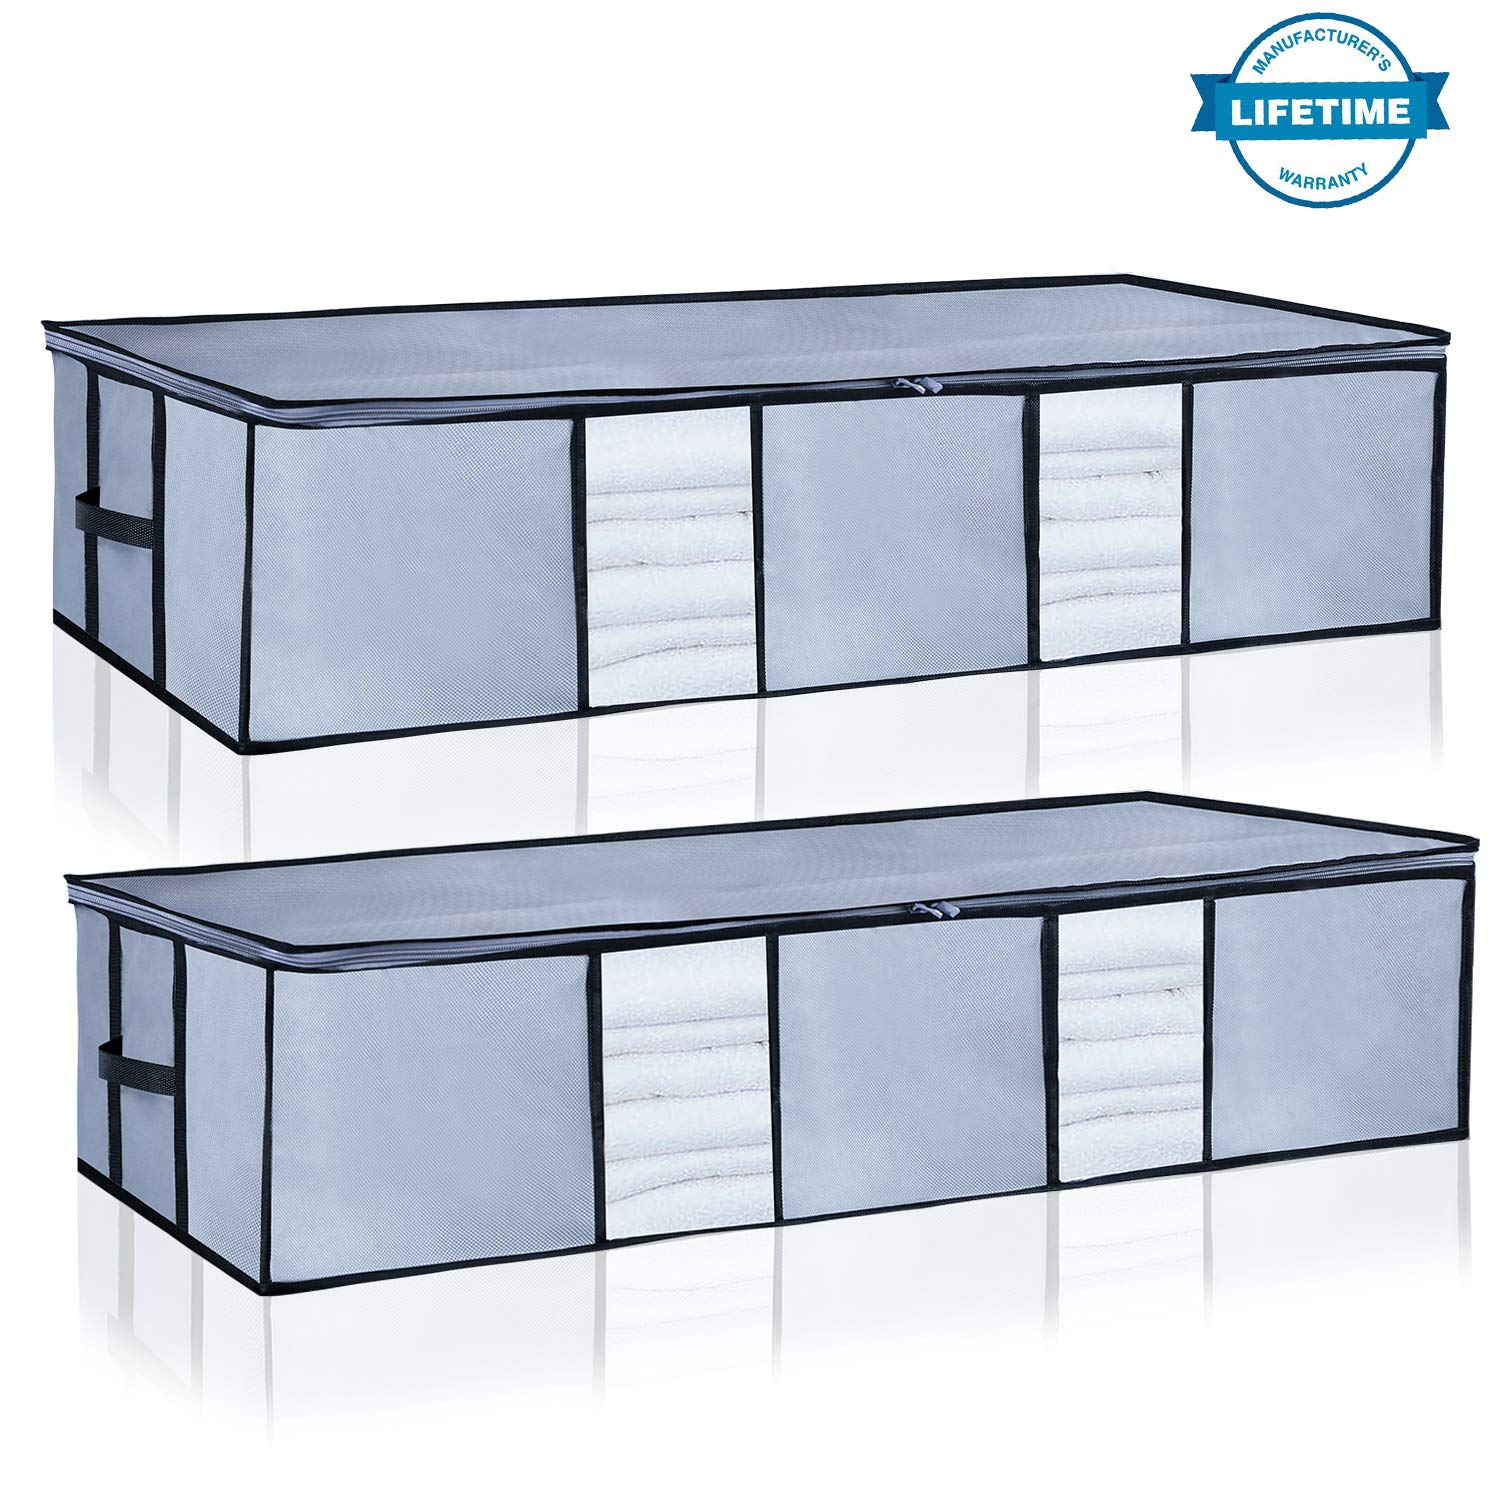 Underbed Storage Bags Organizer Container[2Pack] with Strengthened Handles and Enhanced Zipper, Large Space Saver Comforters Foldable Storage Bags Breathable with Clear Window for Blankets Clothes by Seckon